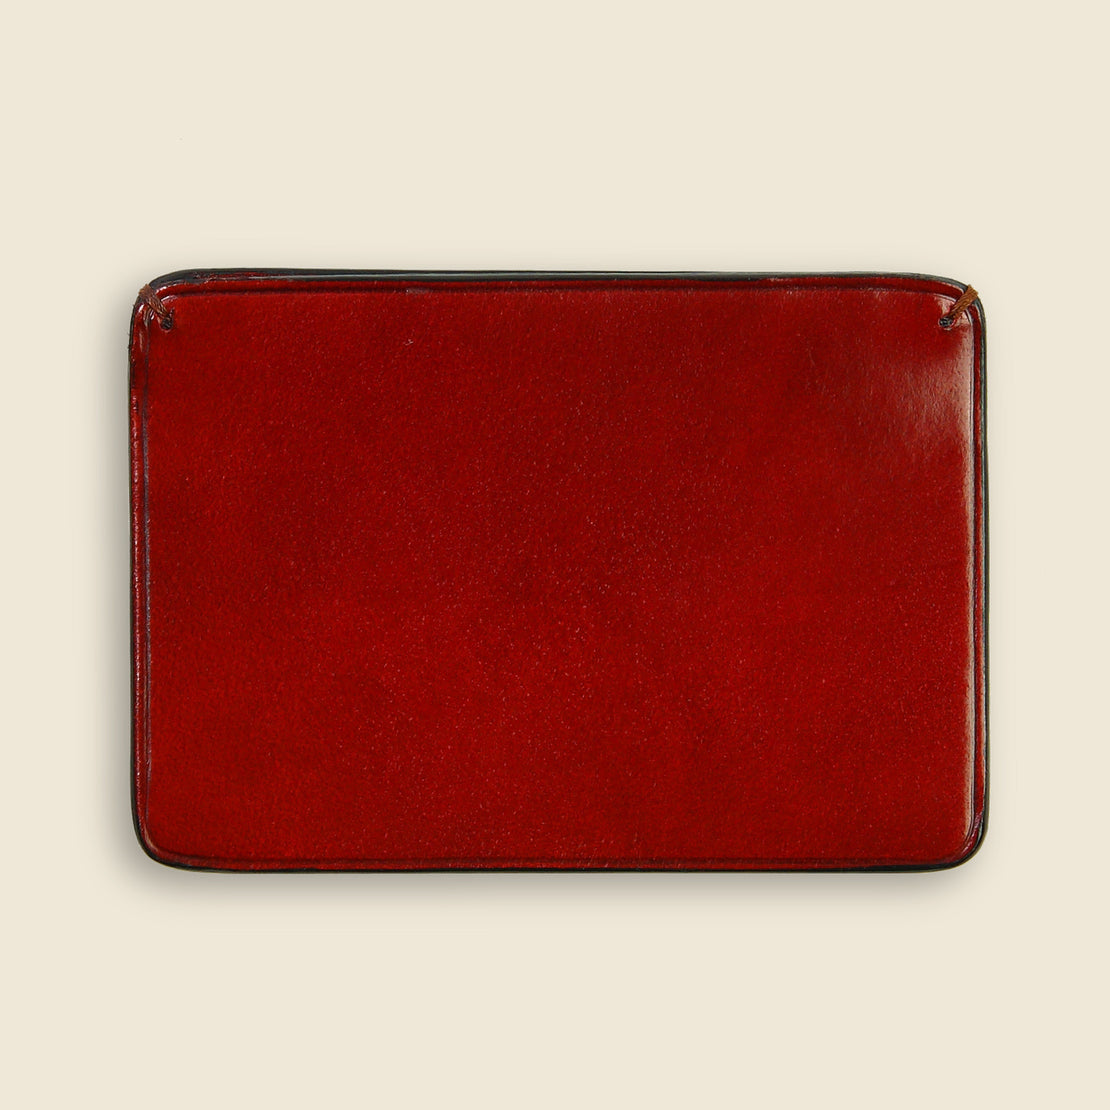 Credit Card Case - Cherry - Il Bussetto - STAG Provisions - Accessories - Wallets